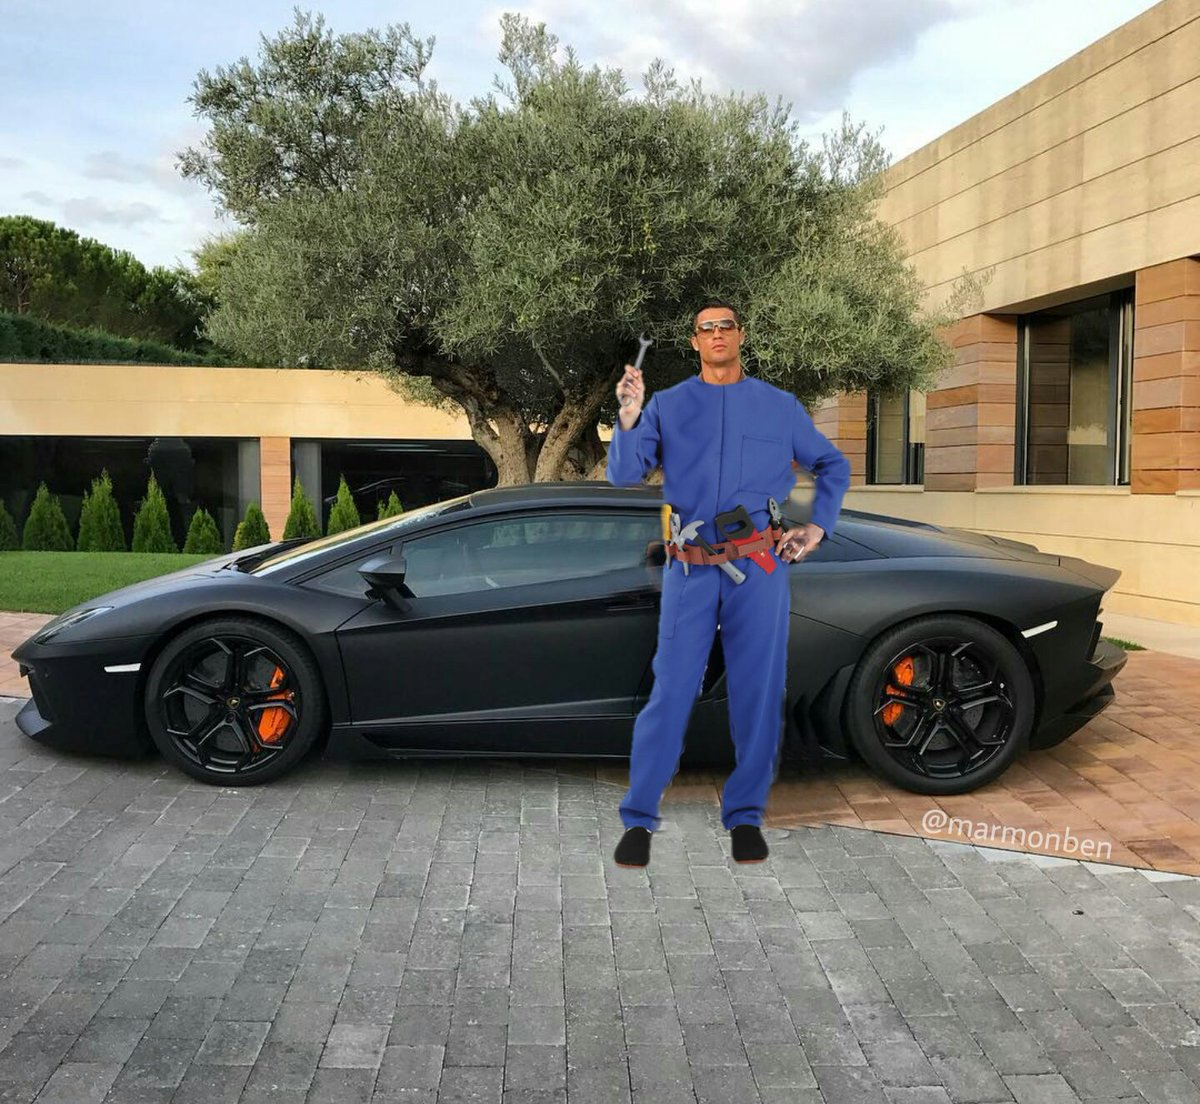 cristiano-ronaldo-post-picture-of-him-and-a-lambo-gets-the-internet-treatment_1